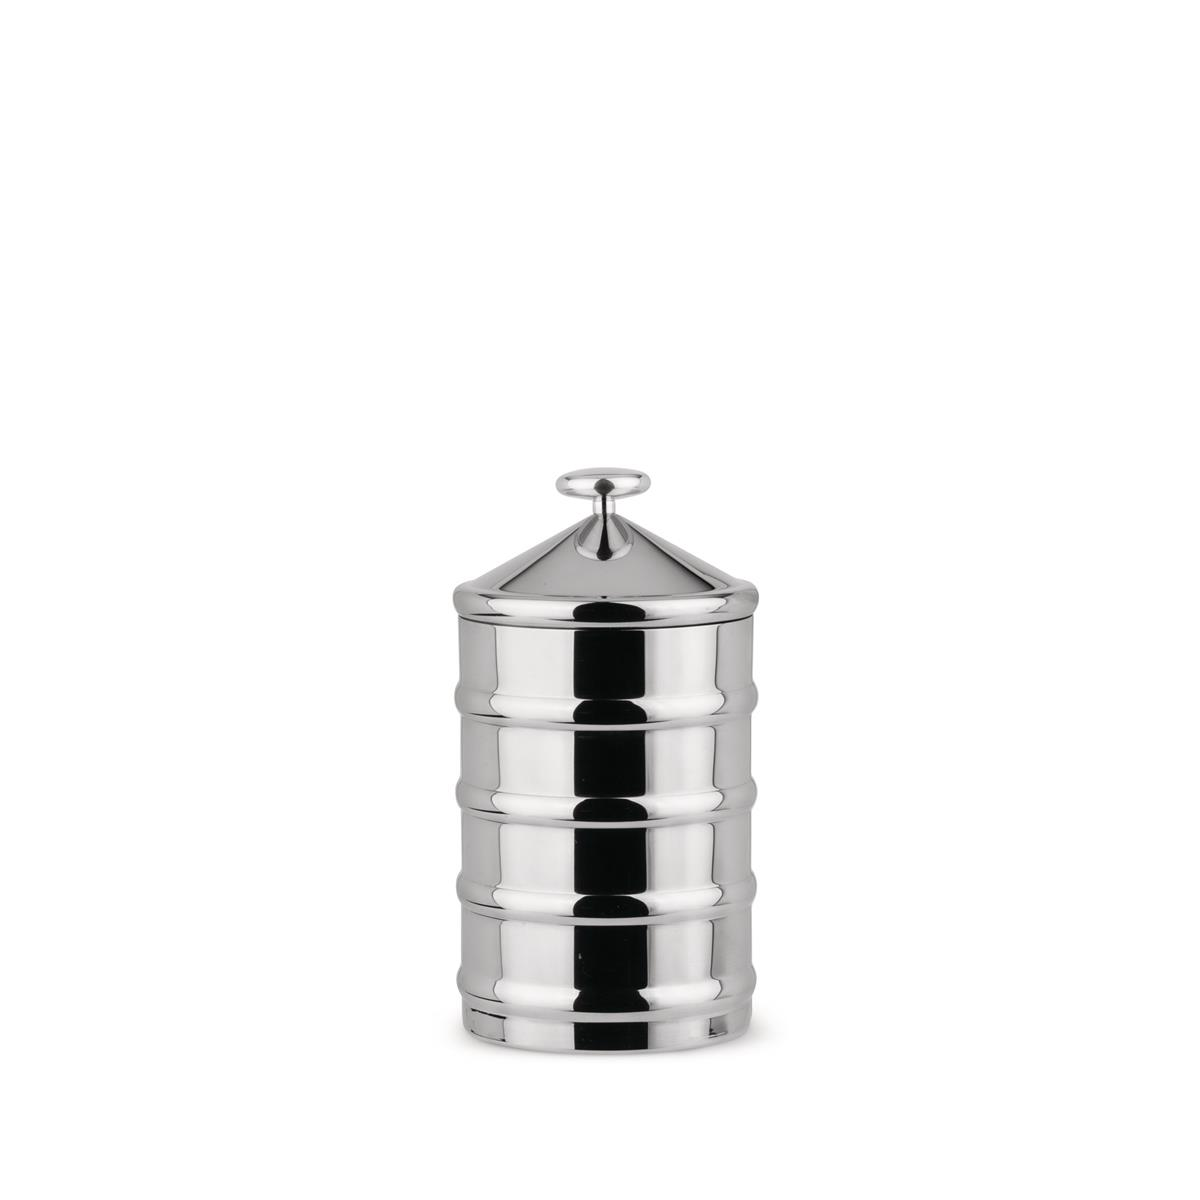 Alessi-Kalistò 3 Jar in 18/10 stainless steel with aluminum knob